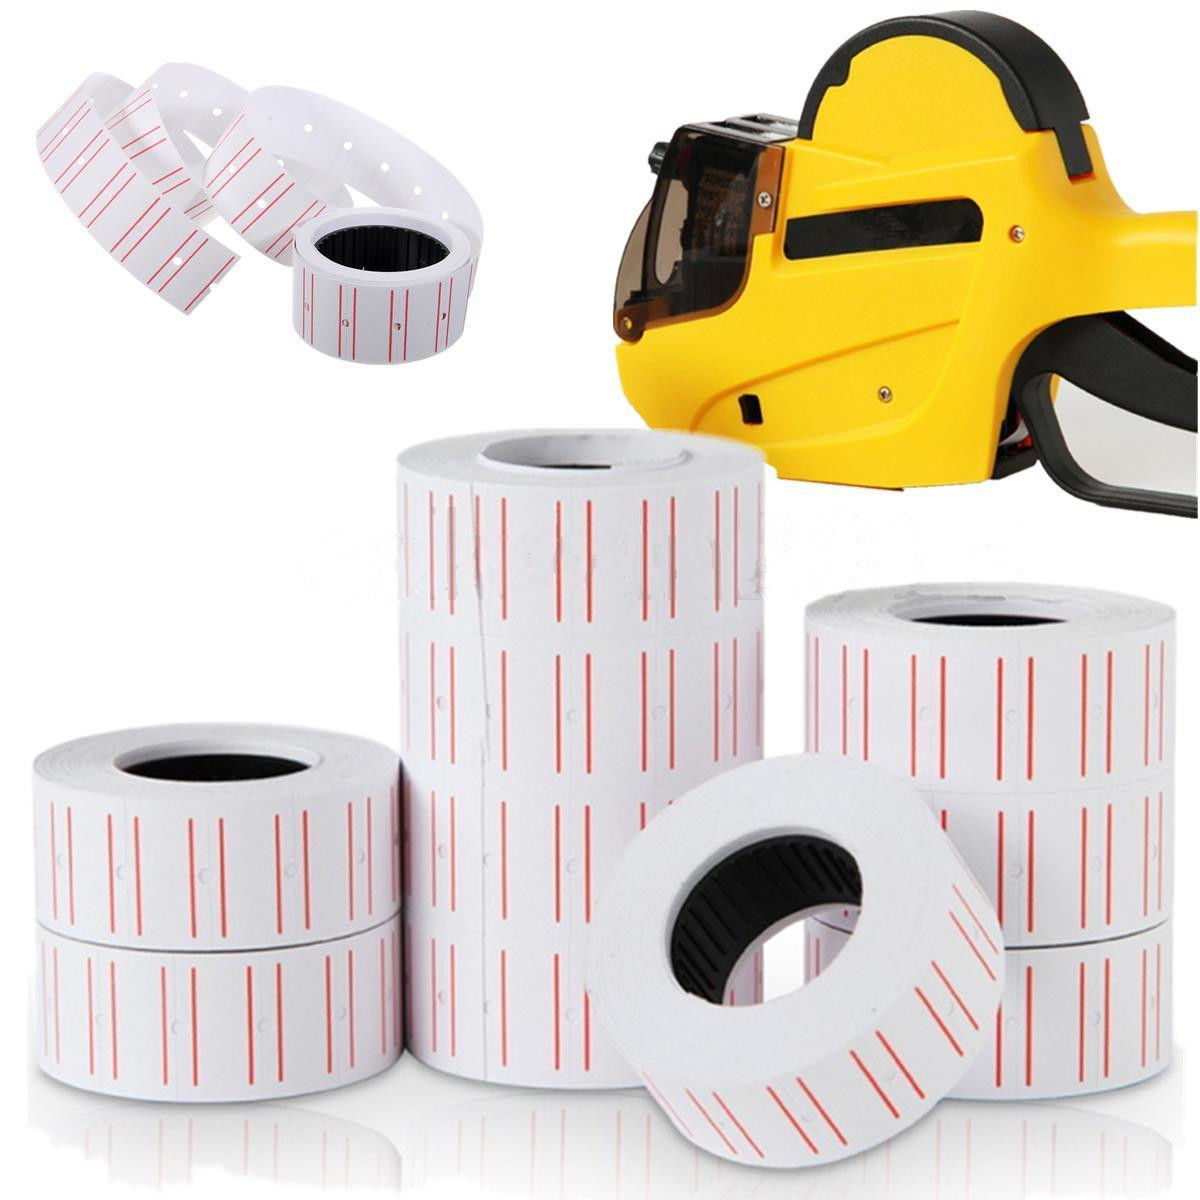 global self adhesive label market 2014 2018 Research corridor recently added new report titled flexographic printing self-adhesive label market report - global trends, market share, industry size, growth, opportunities, and market forecast - 2018 – 2026 to its repertoire.